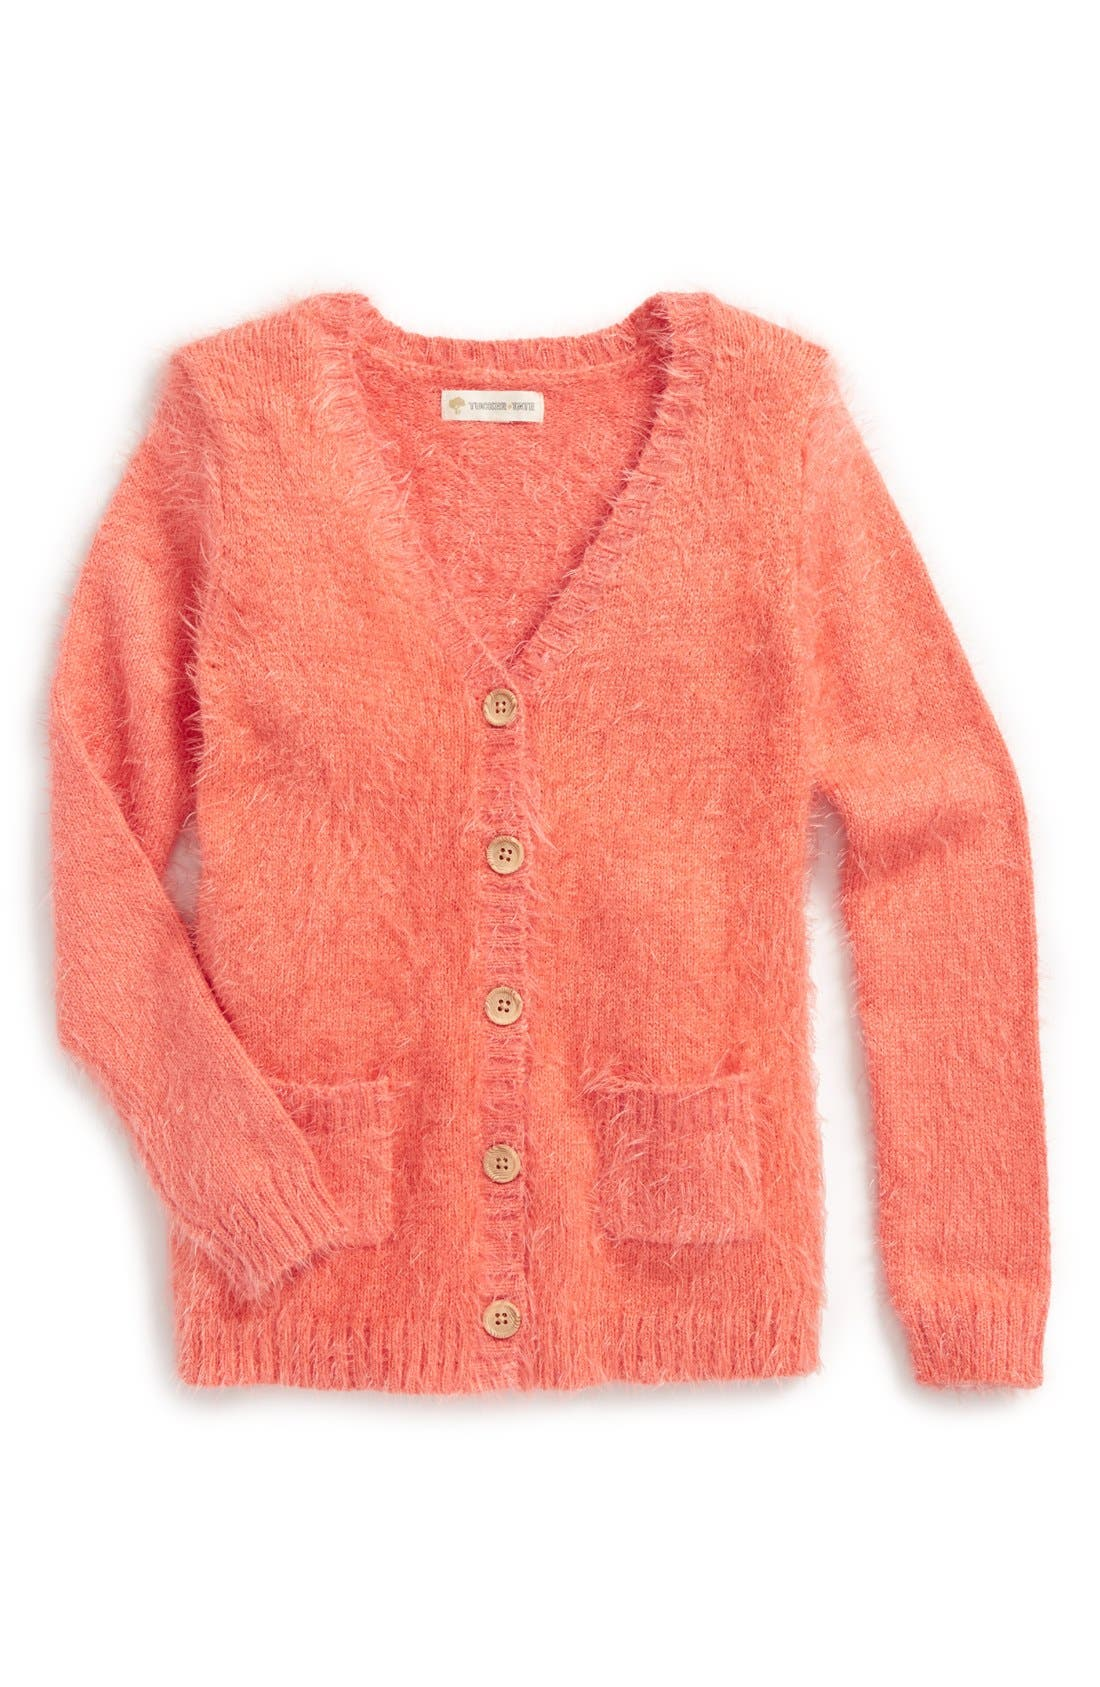 Alternate Image 1 Selected - Tucker + Tate 'Fluffy' Cardigan (Toddler Girls)